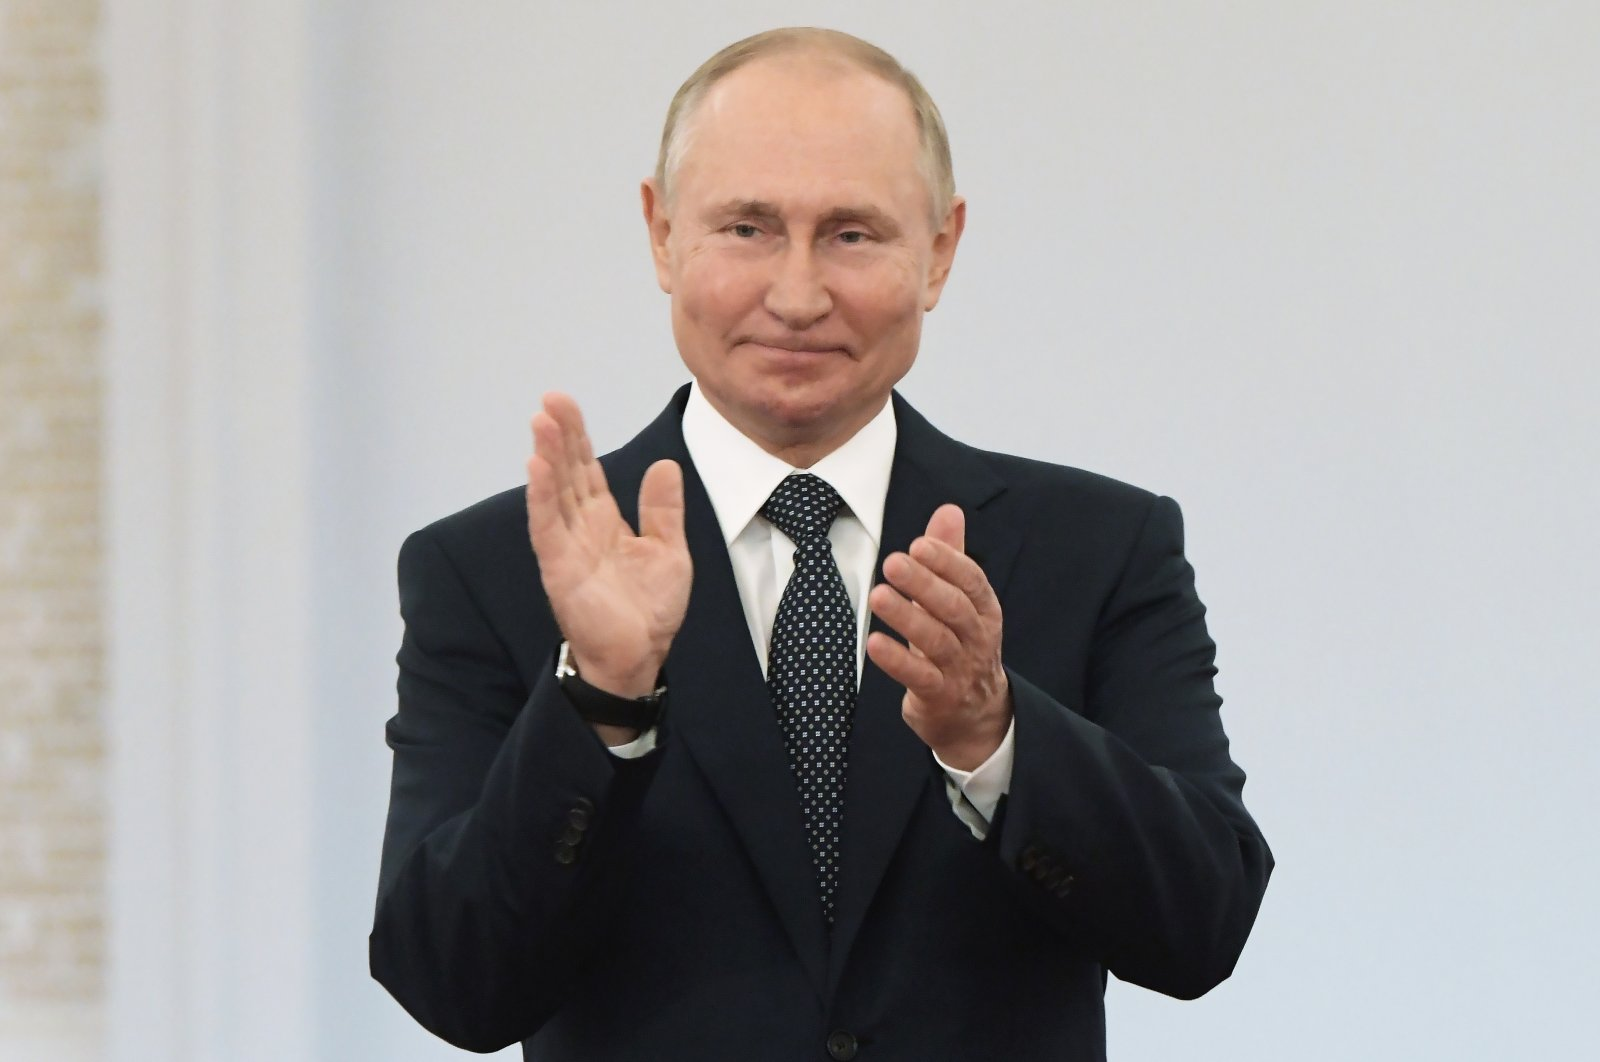 Russian President Vladimir Putin applauds during an awards ceremony for the Russian Olympic Committee's medalists of the Tokyo 2020 Summer Olympics in the Kremlin in Moscow, Russia, Sept. 11, 2021. (AP Photo)